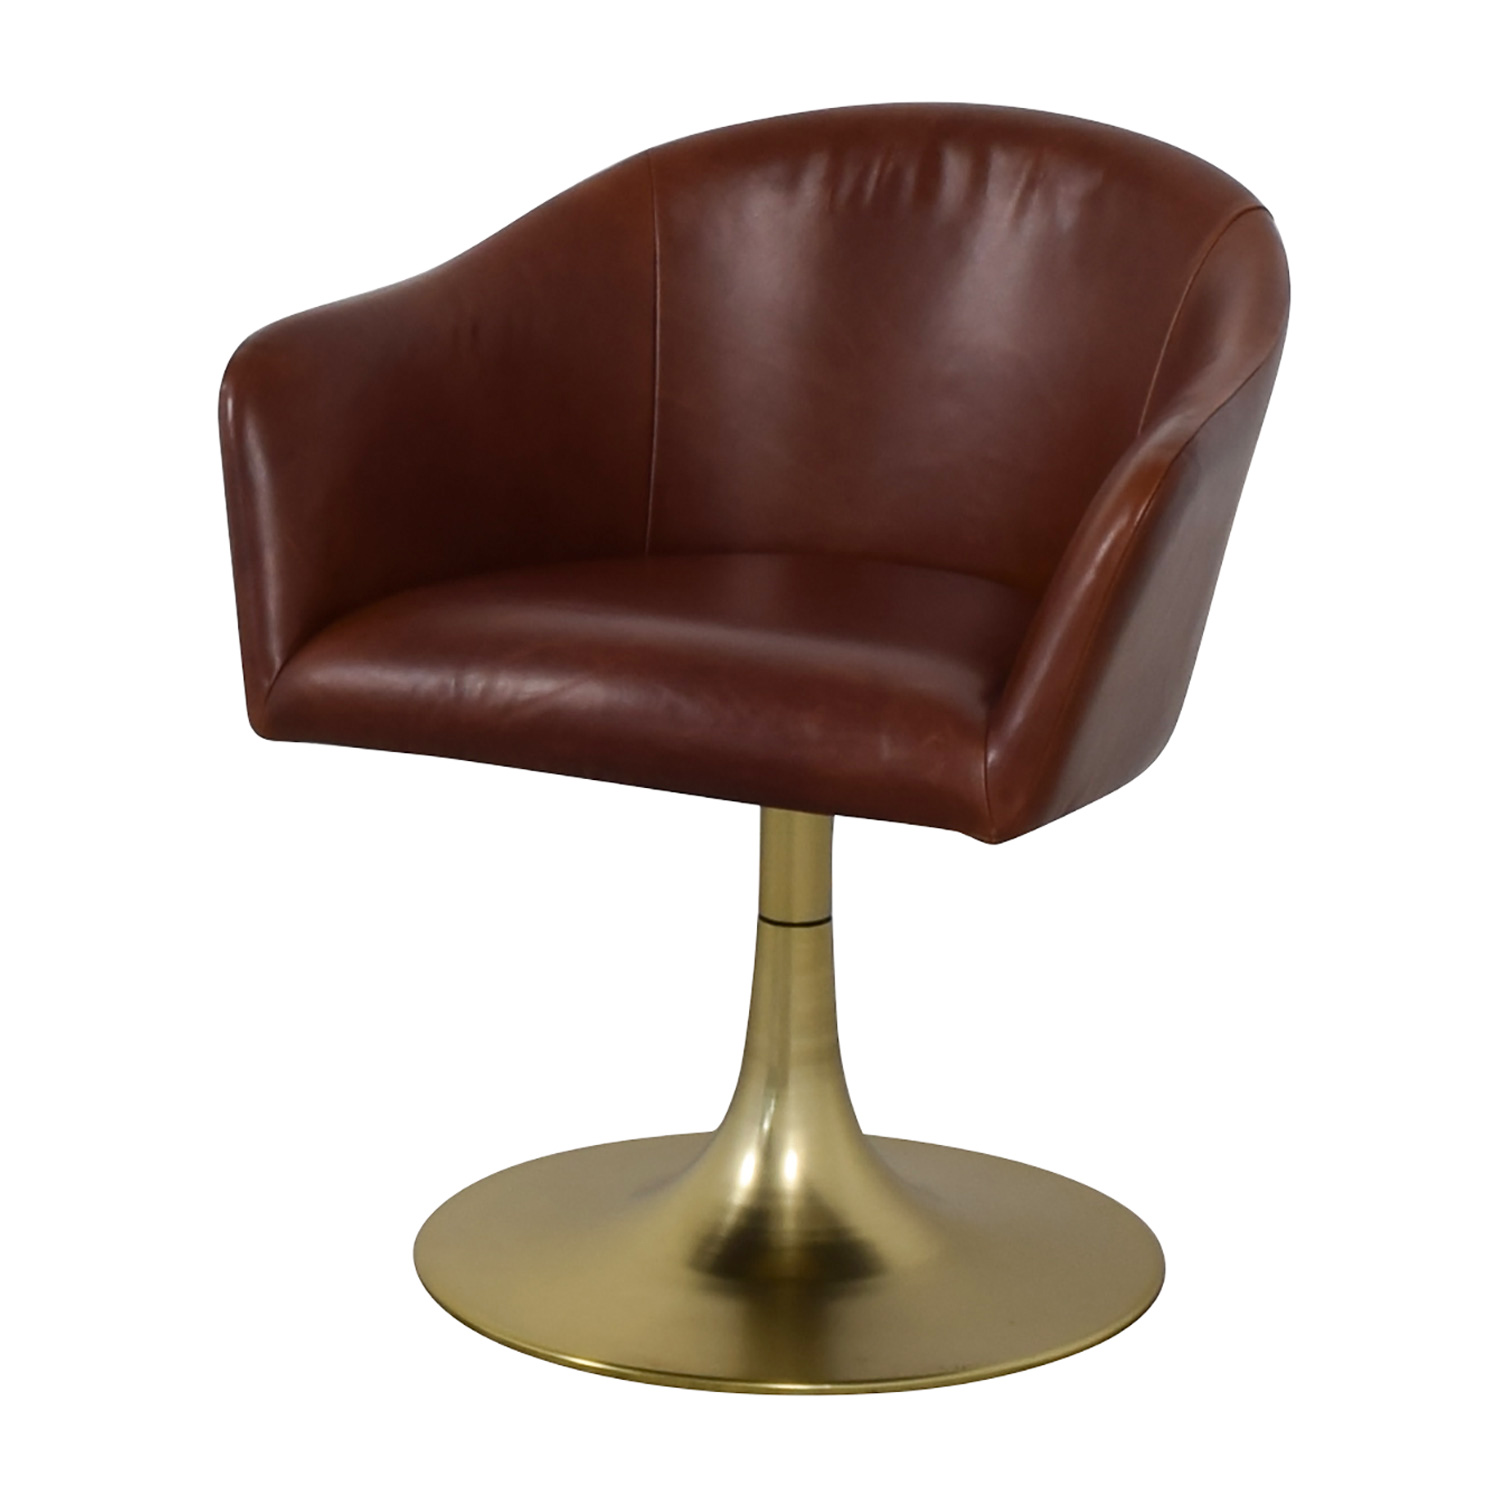 shop West Elm Bond Swivel Office Chair Leather Metal Base West Elm Chairs